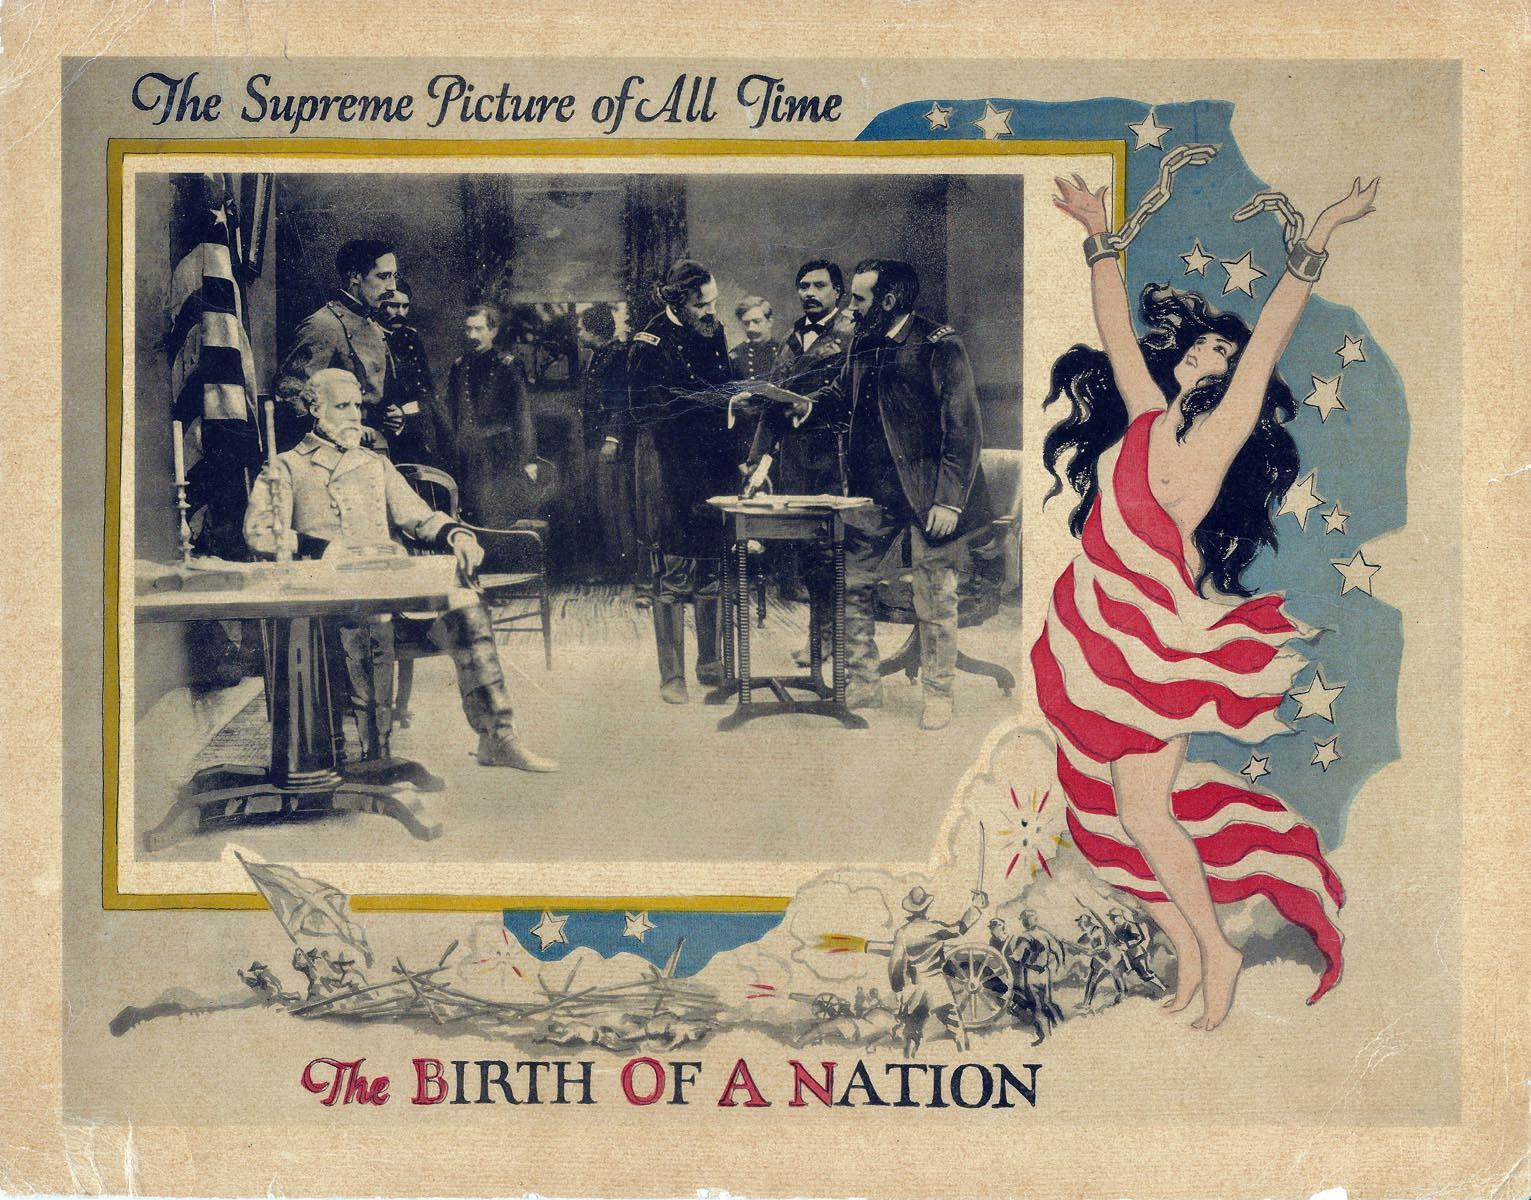 BIRTH OF A NATION, THE (1915; 1921 reissue): Griffith, D. W. (director)